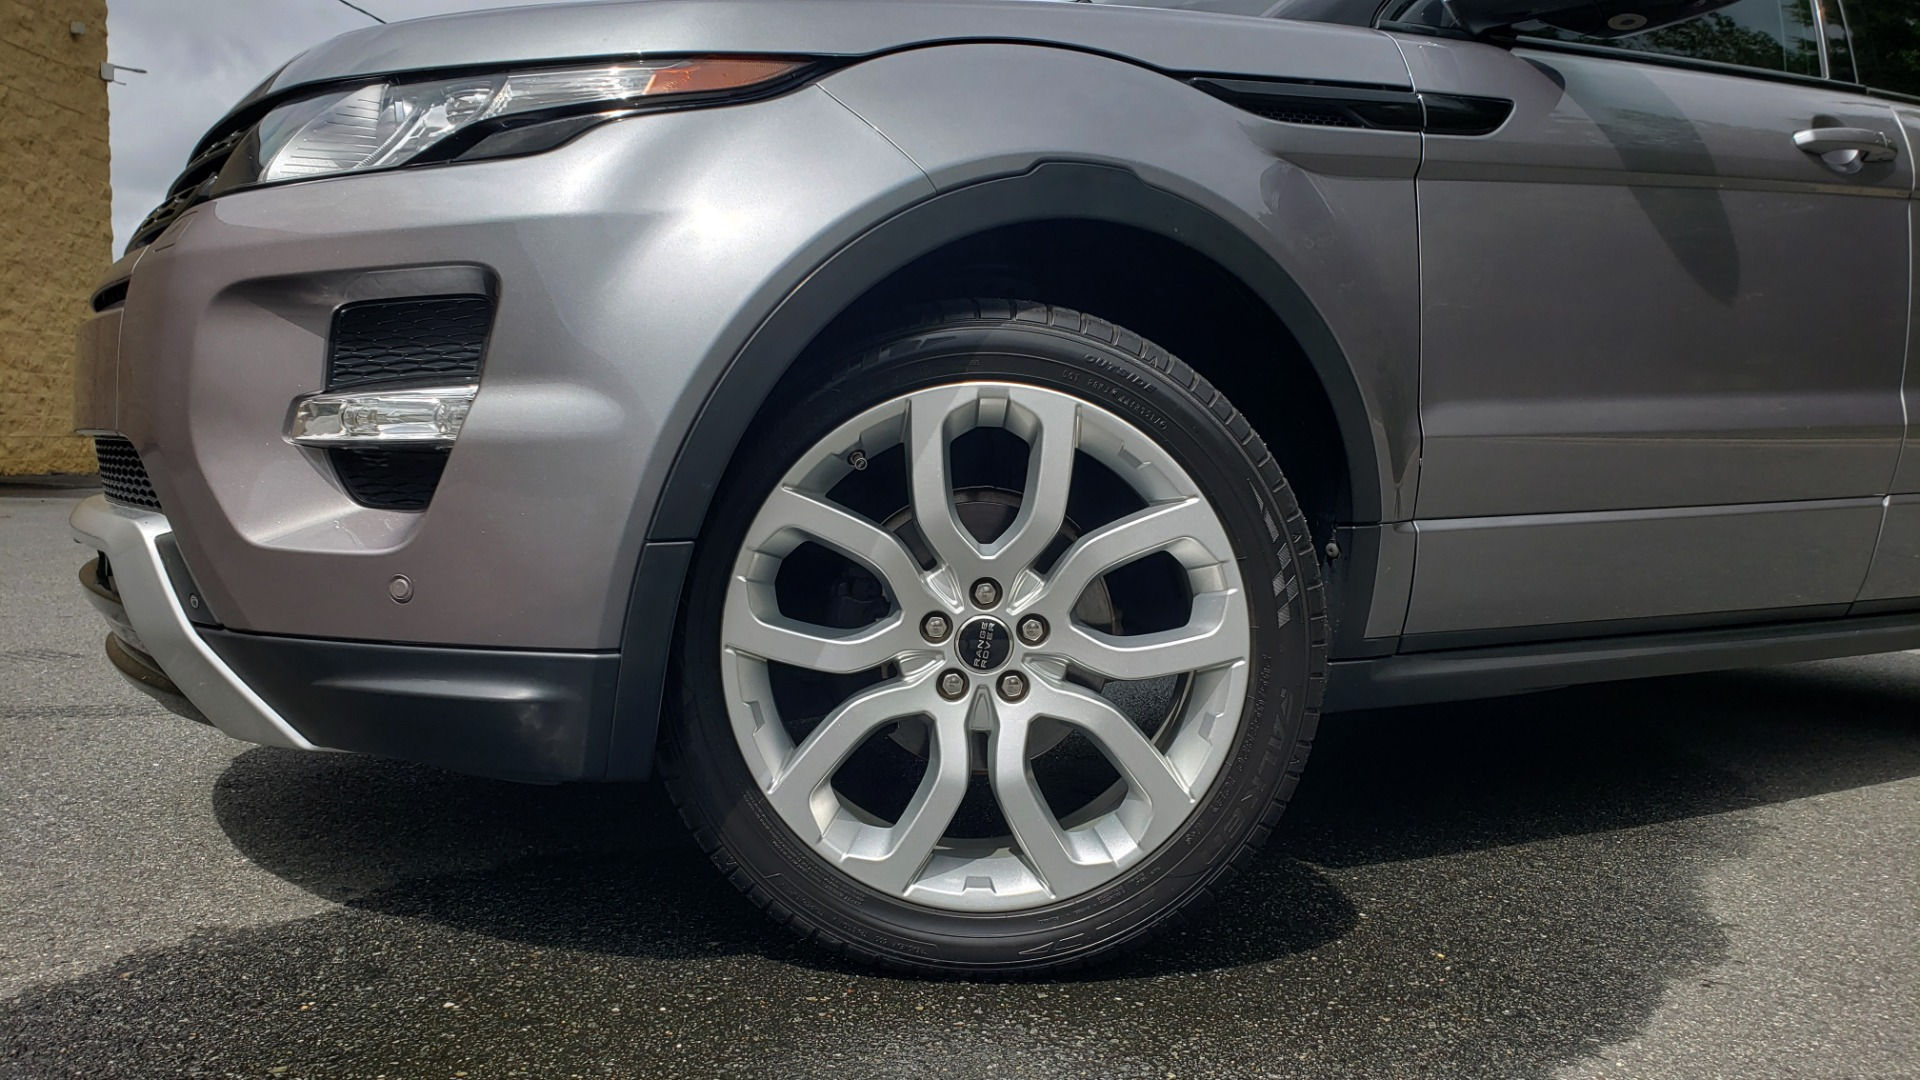 Used 2013 Land Rover RANGE ROVER EVOQUE DYNAMIC PREMIUM / NAV / PANO-ROOF / BLIND SPOT / REARVIEW for sale Sold at Formula Imports in Charlotte NC 28227 12